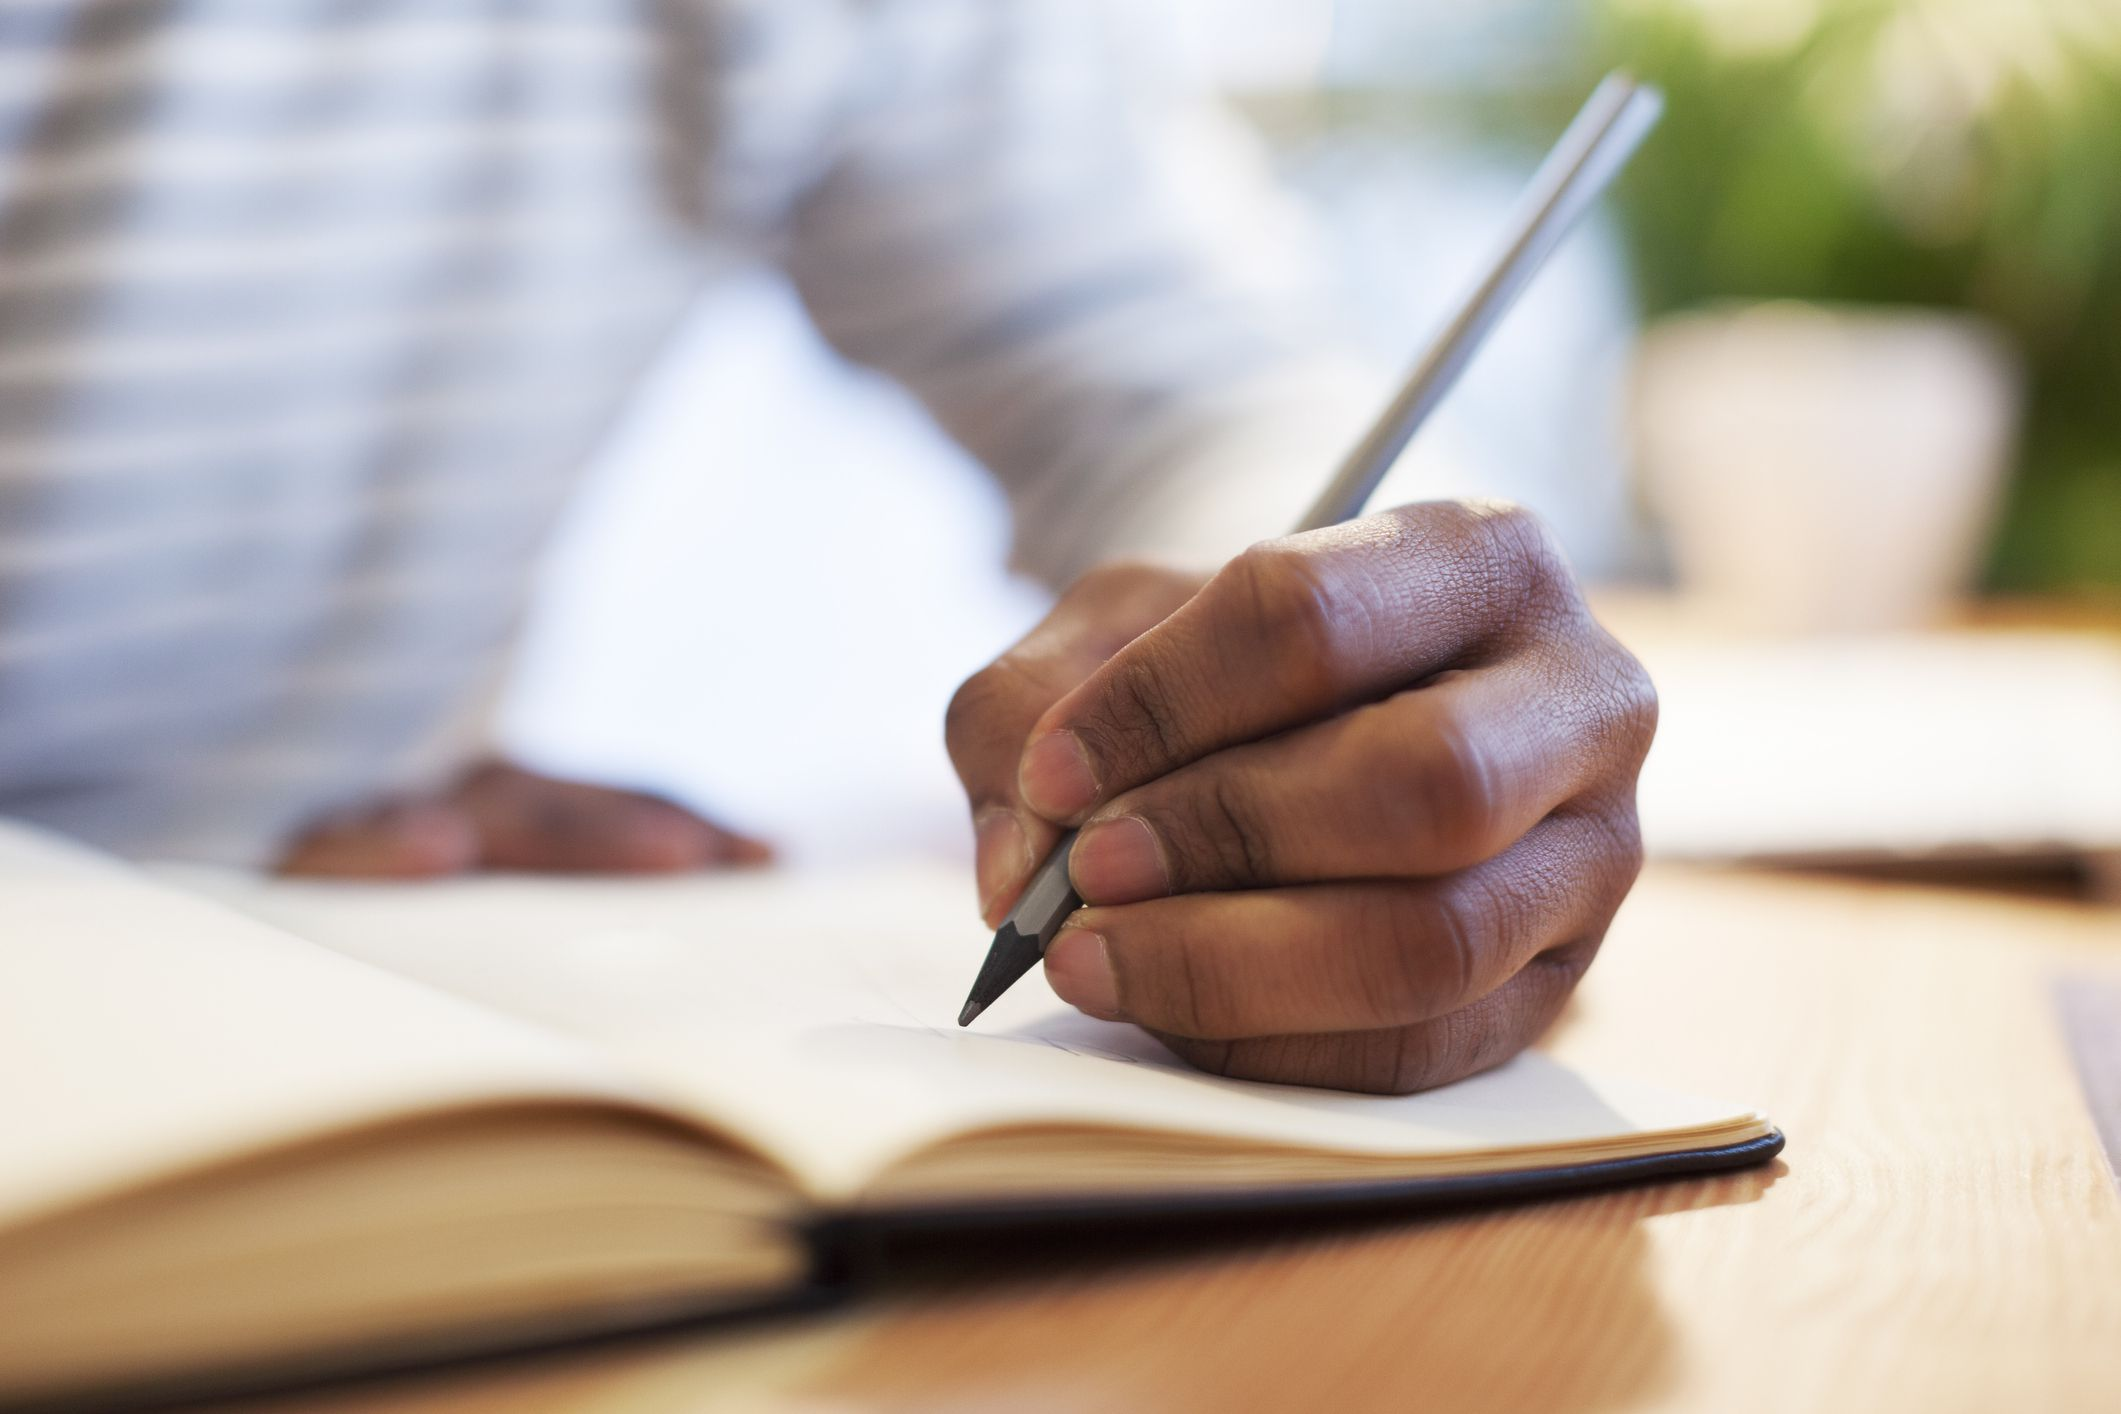 The 8 Best Pens For Lefties In